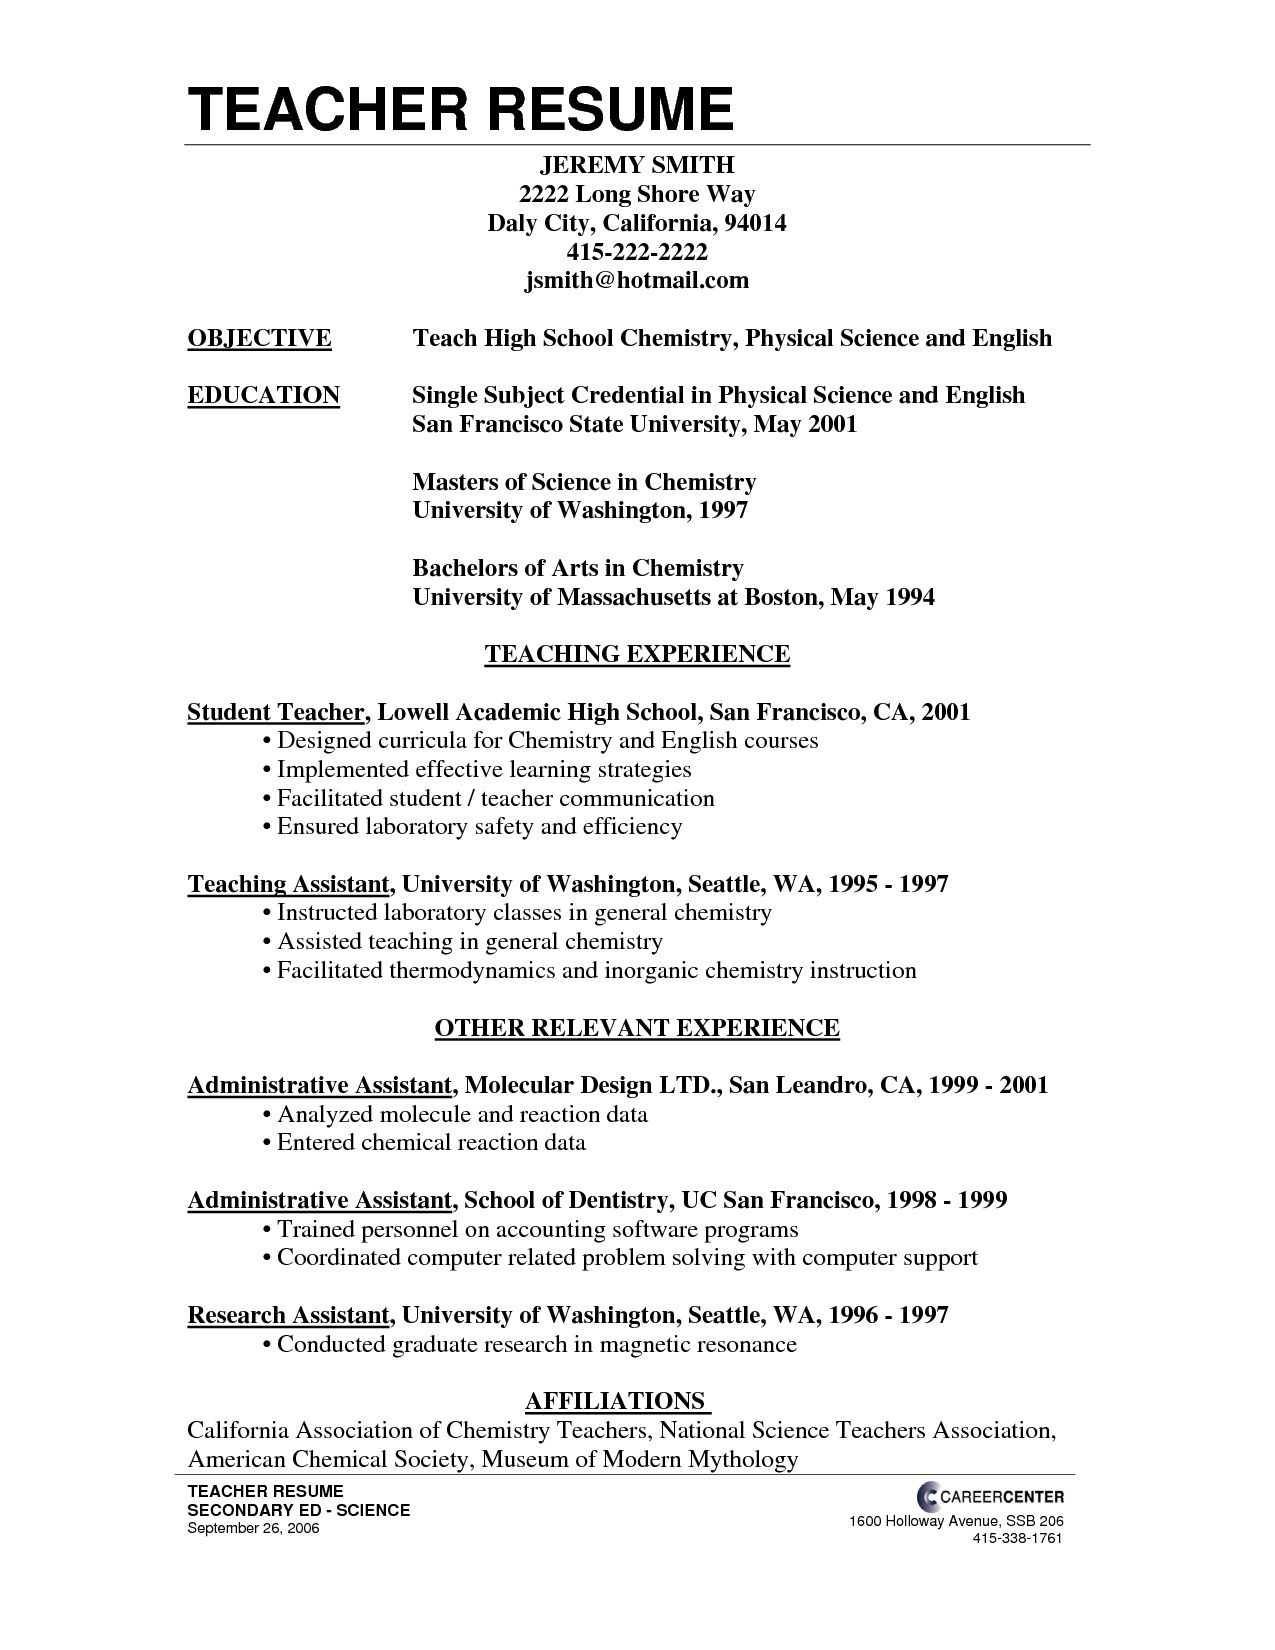 high school teacher resume jobresumesample com high teachers cv teachers professional reacutesumeacutes works education professionals to create dynamic job applications and prepare for interview